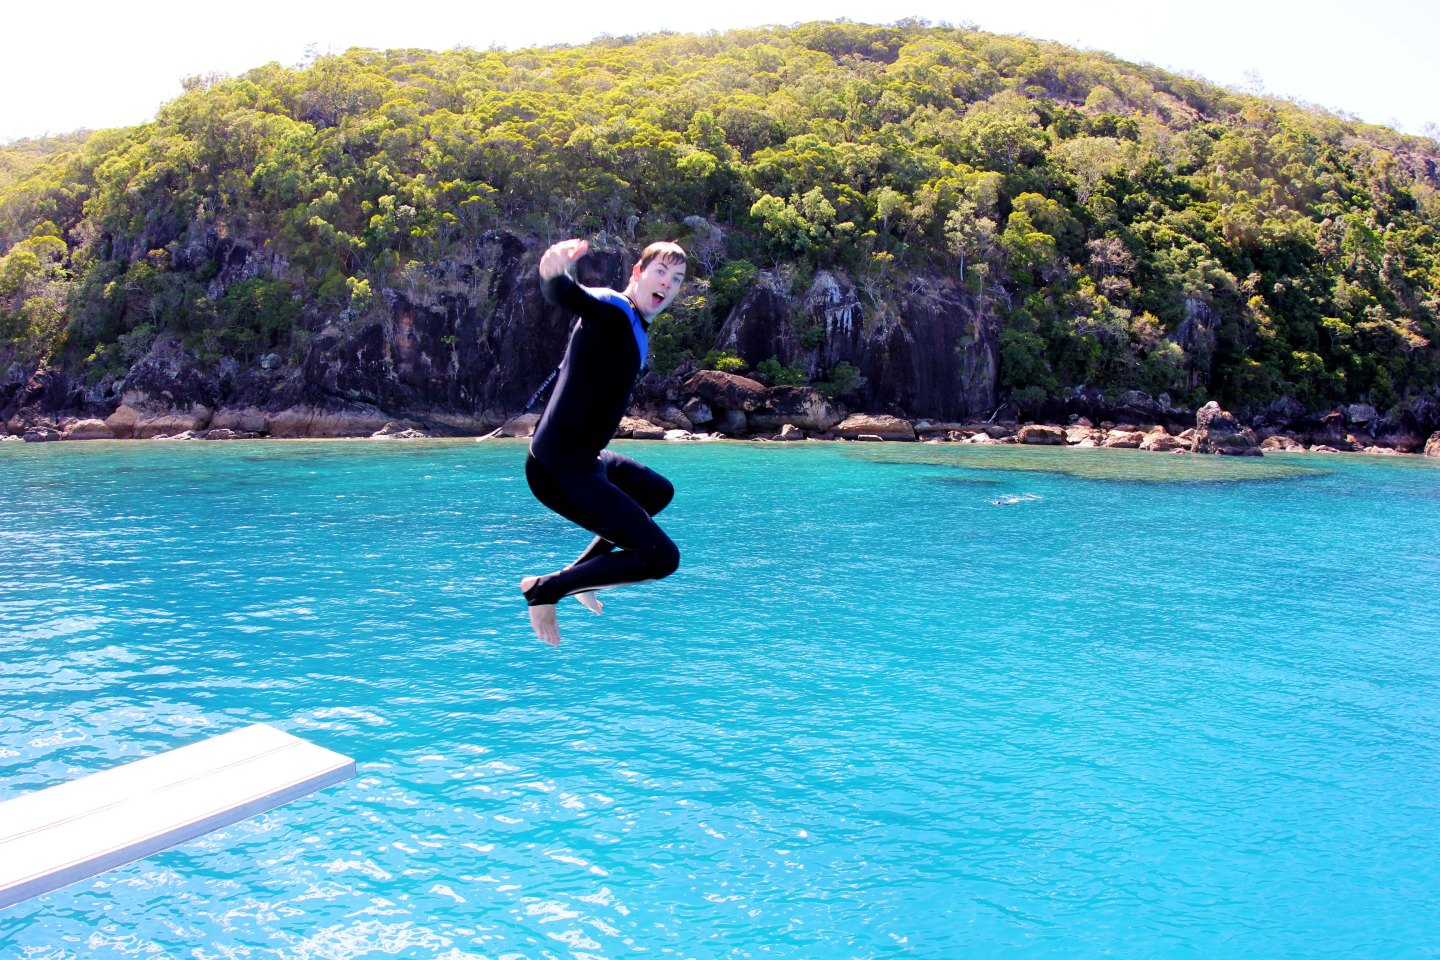 GUEST POST: Diving the Great Barrier Reef